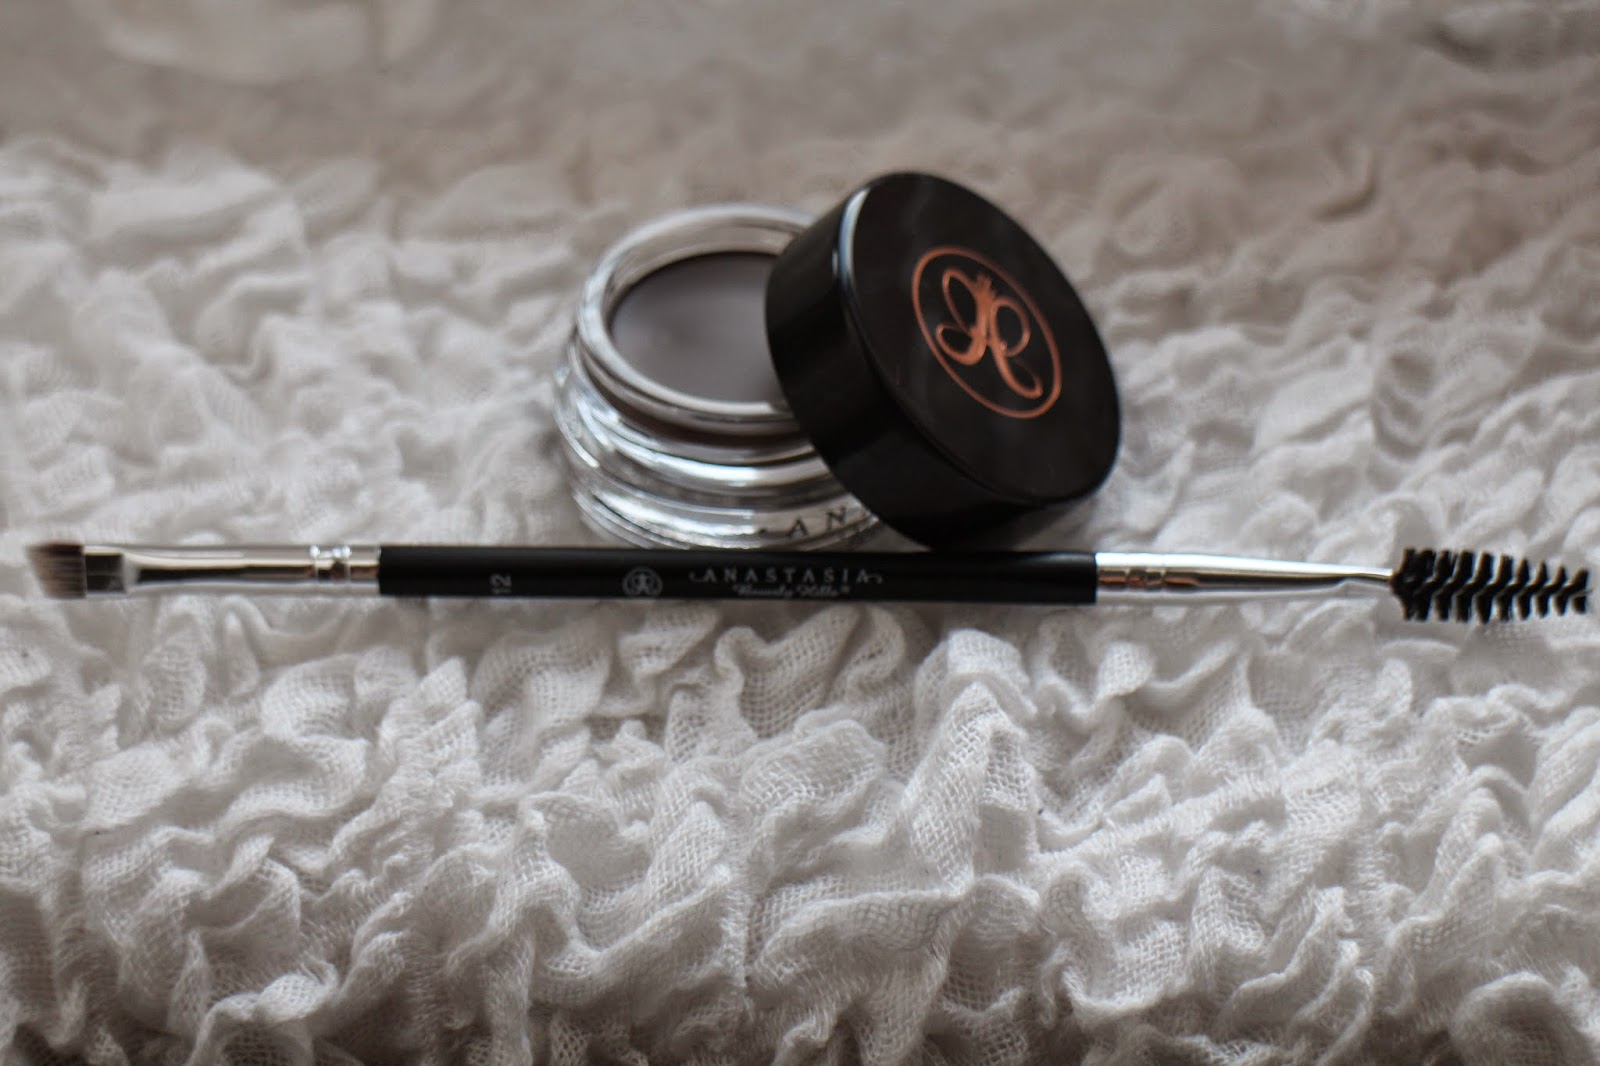 Anastasia DipBrow Pomade, Anastasia dipbrow review, Anastasia brush review, Best eyebrow product, Anastasia brush #12, cult beauty